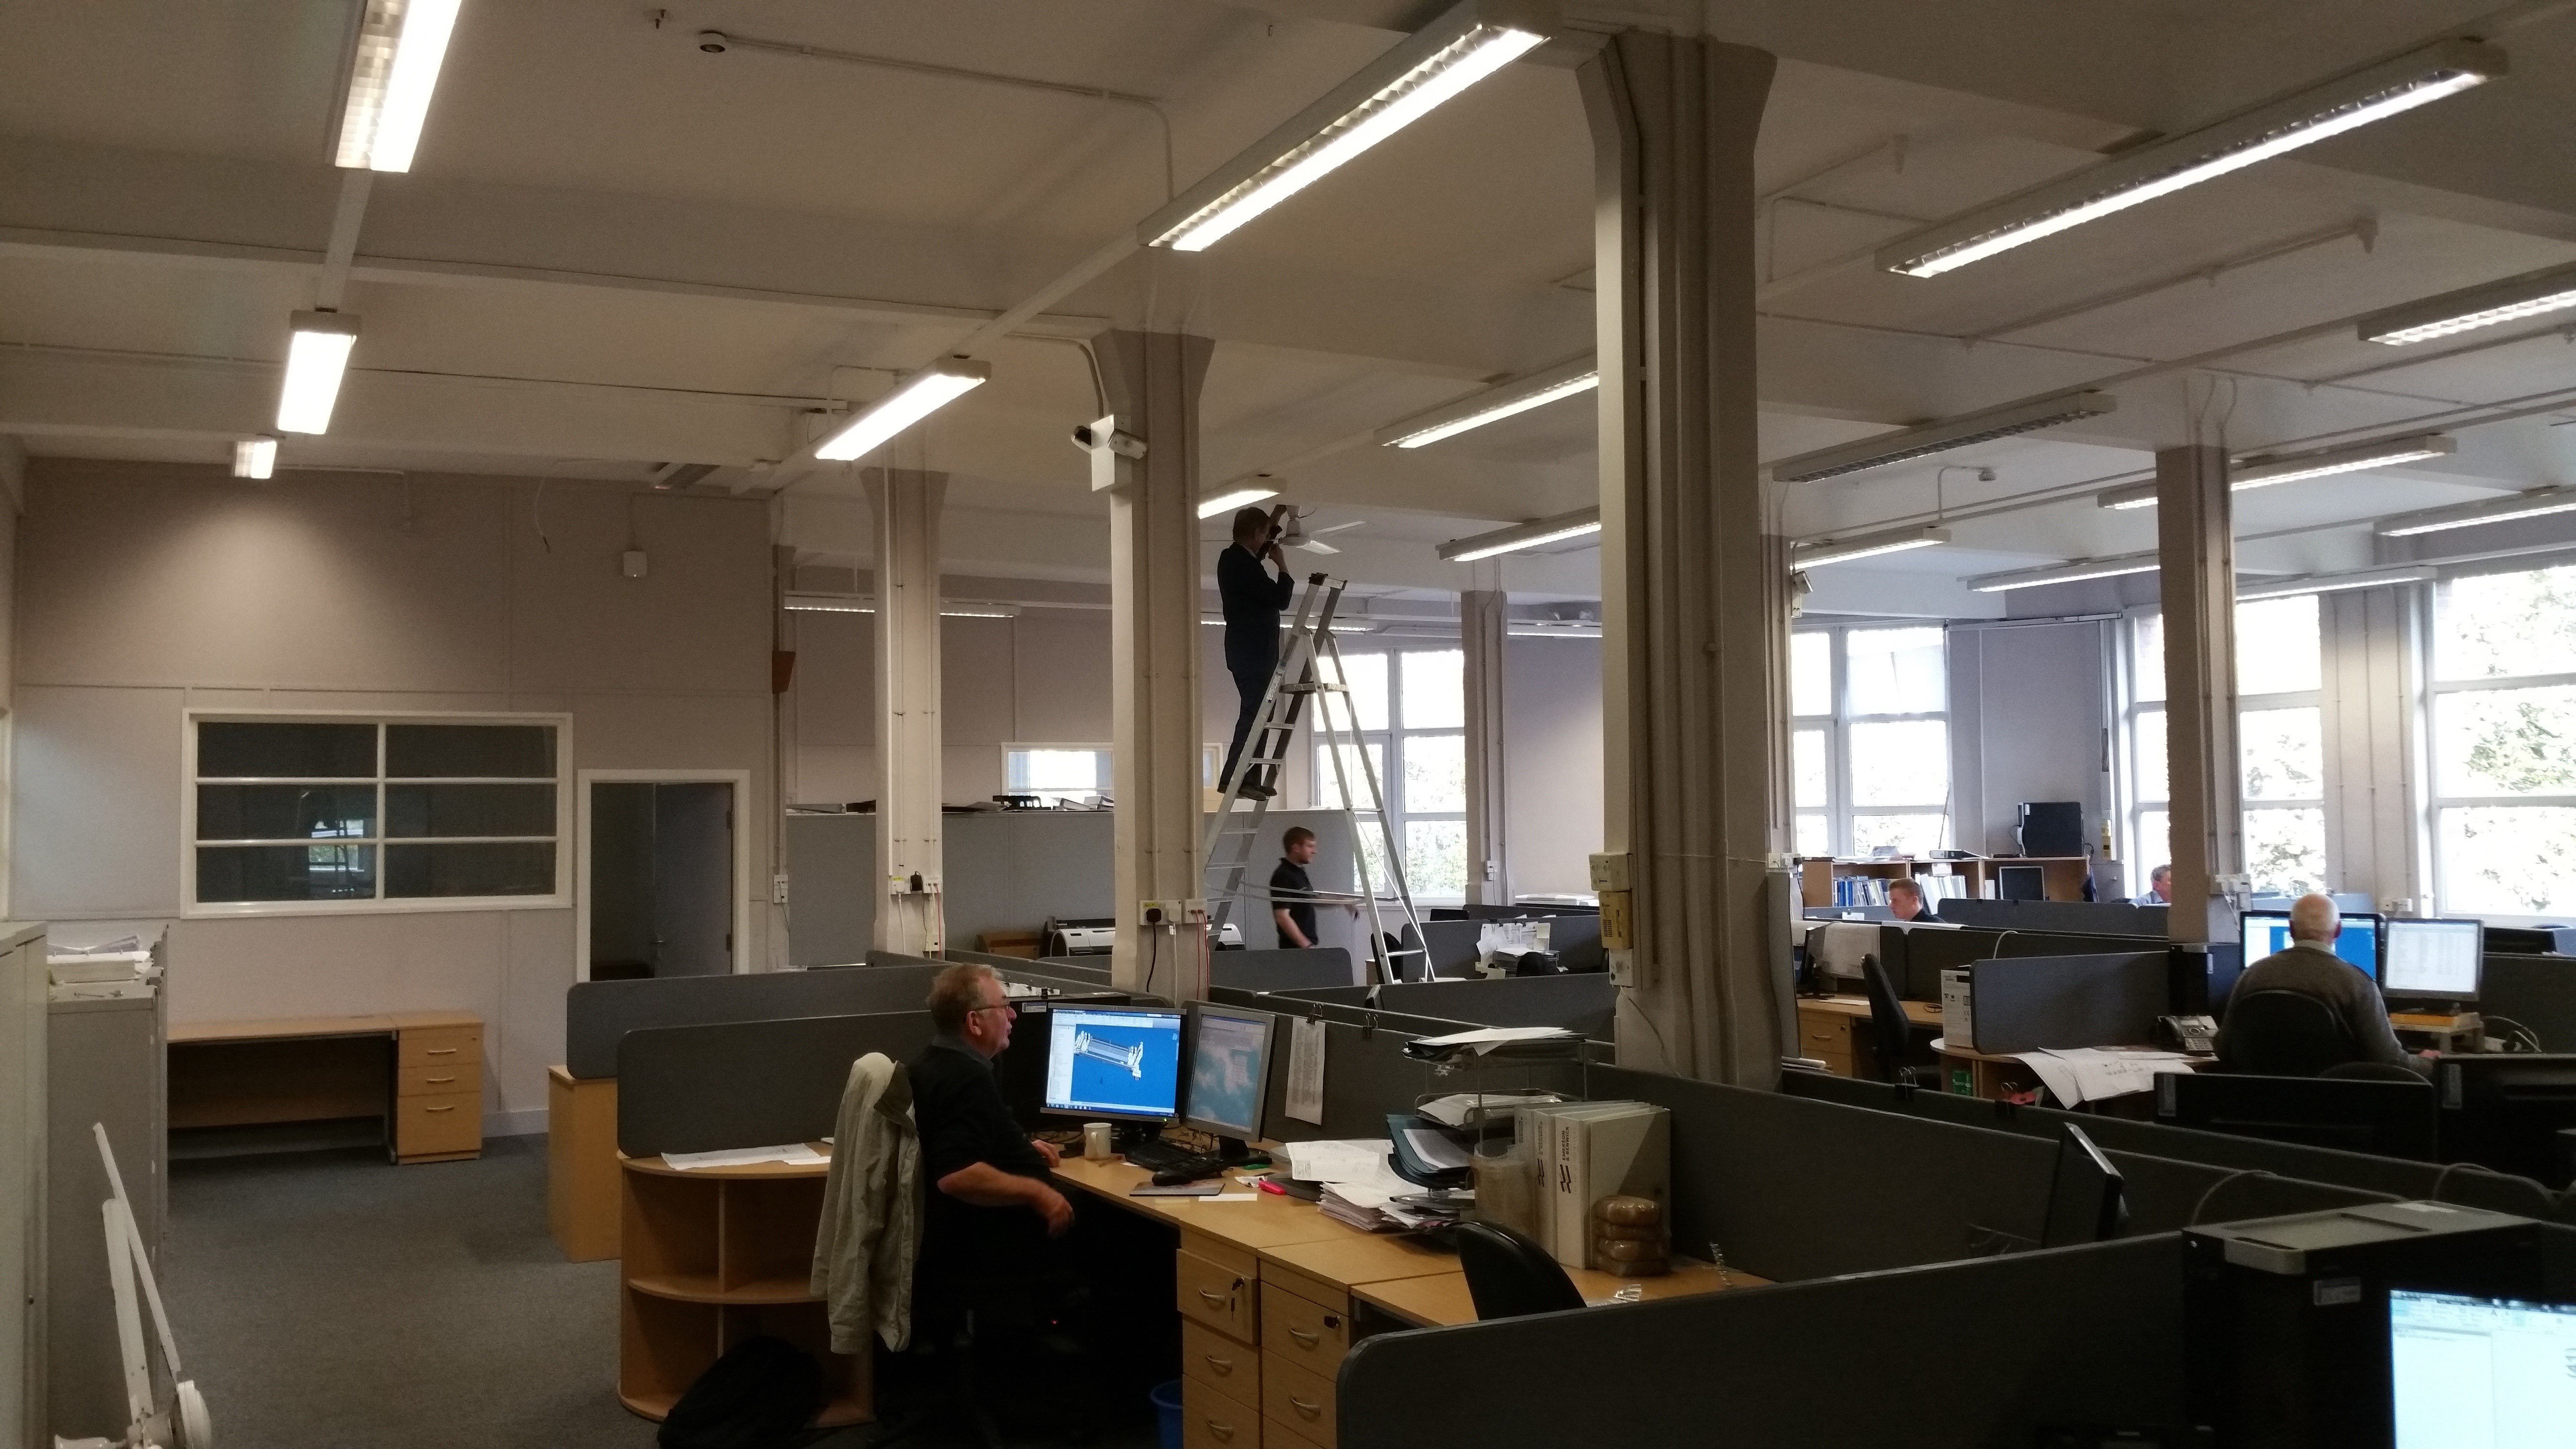 A man on a step ladder, installing suspended ceiling lights